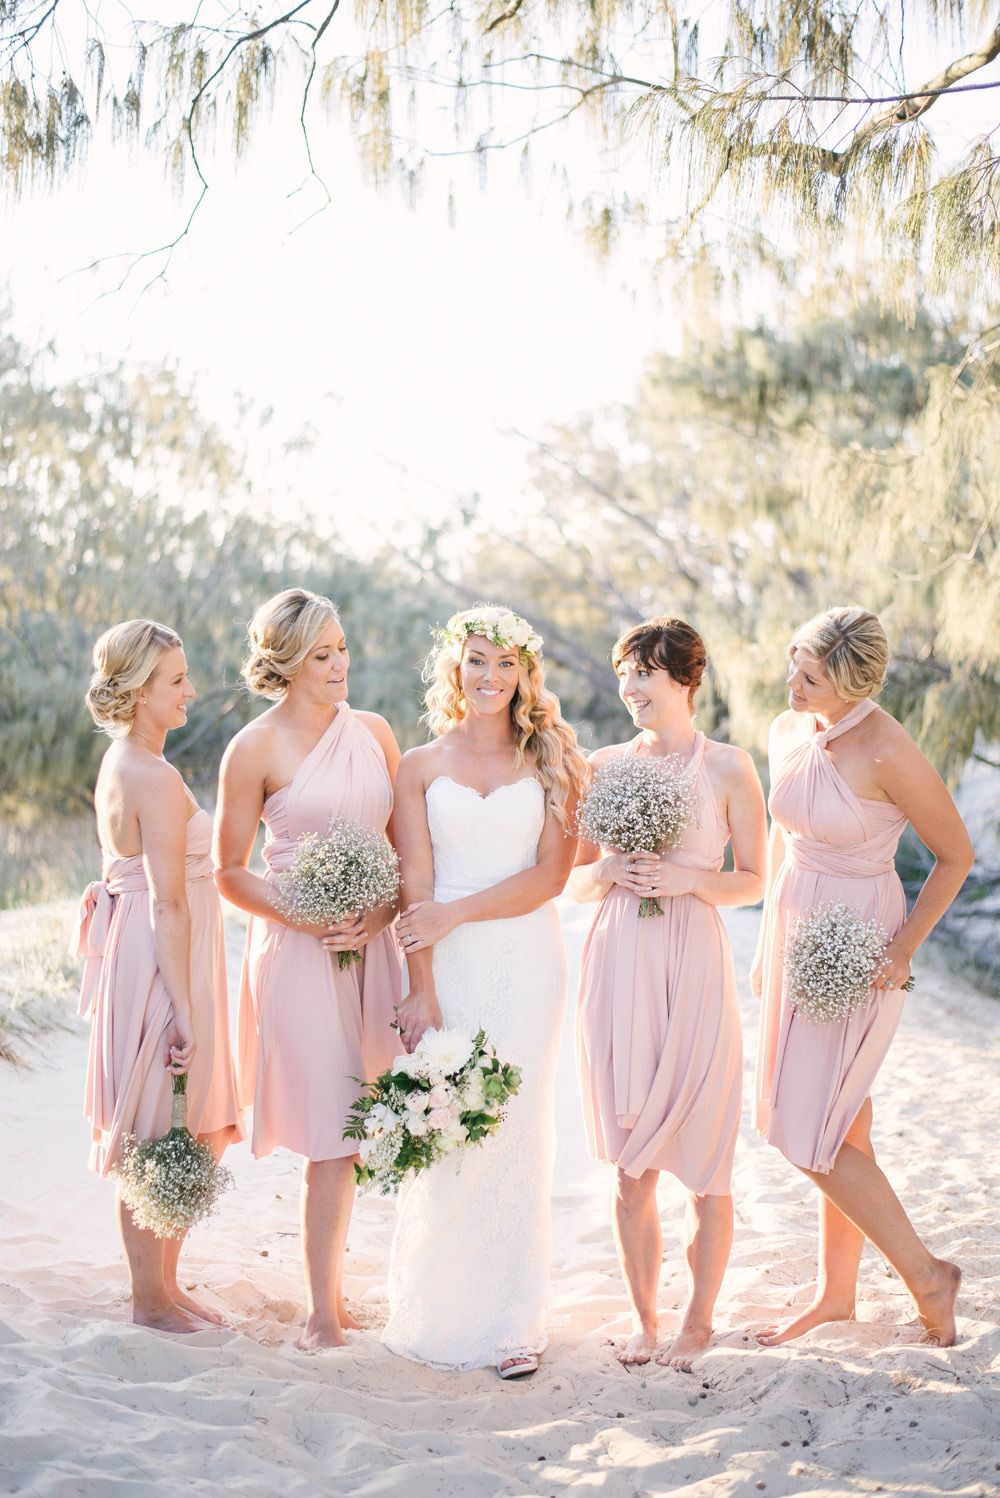 Bridesmaid dress for beach wedding  Elegant Beach Wedding on Stradbroke Island  Wedding Weddings and